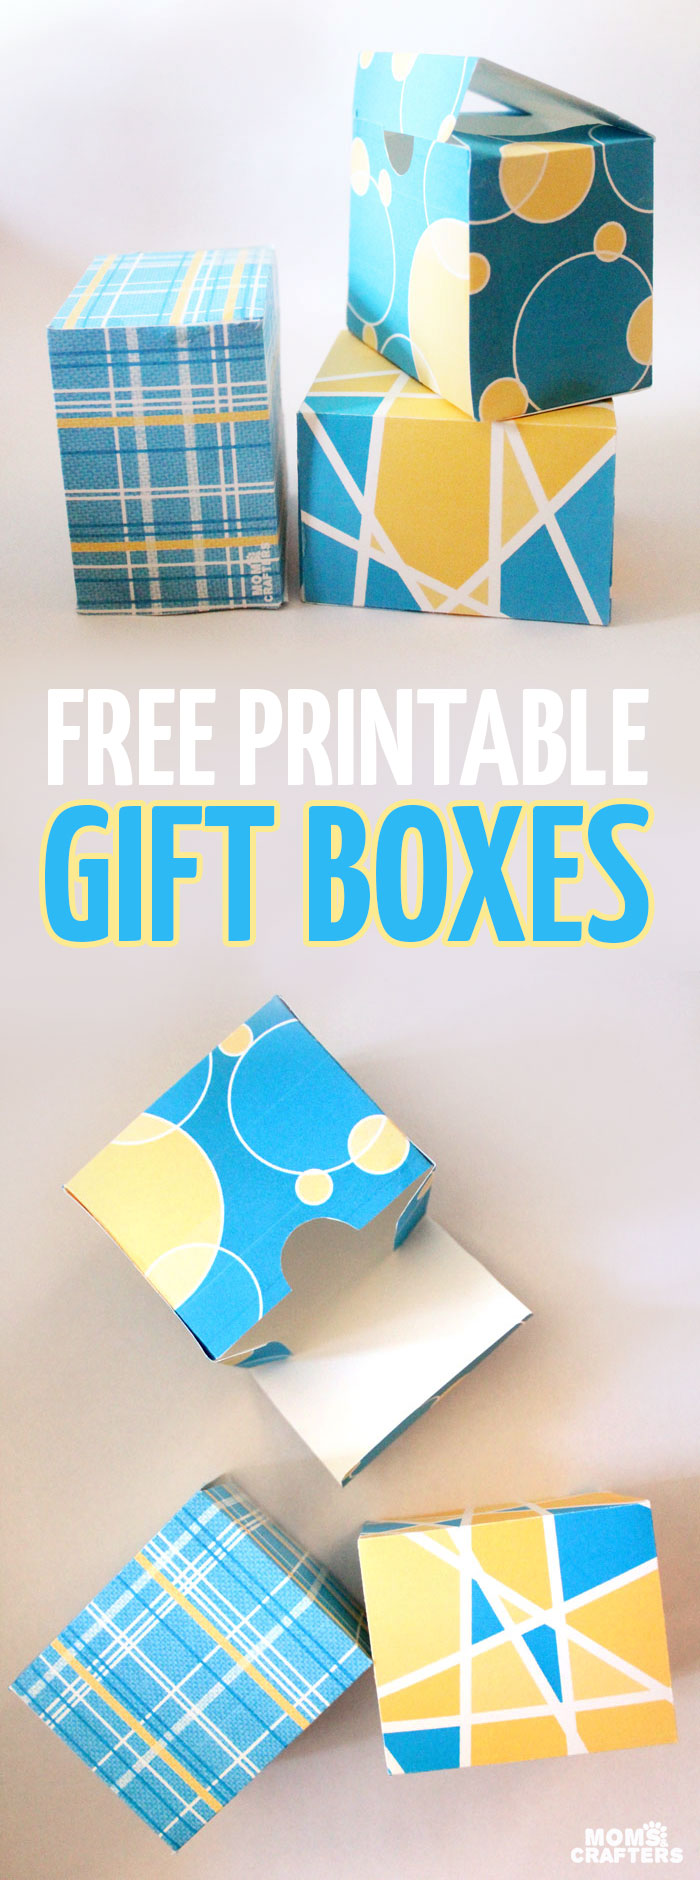 Free printable gift boxes moms and crafters download these free printable gift boxes for your holiday or year round gift giving negle Choice Image